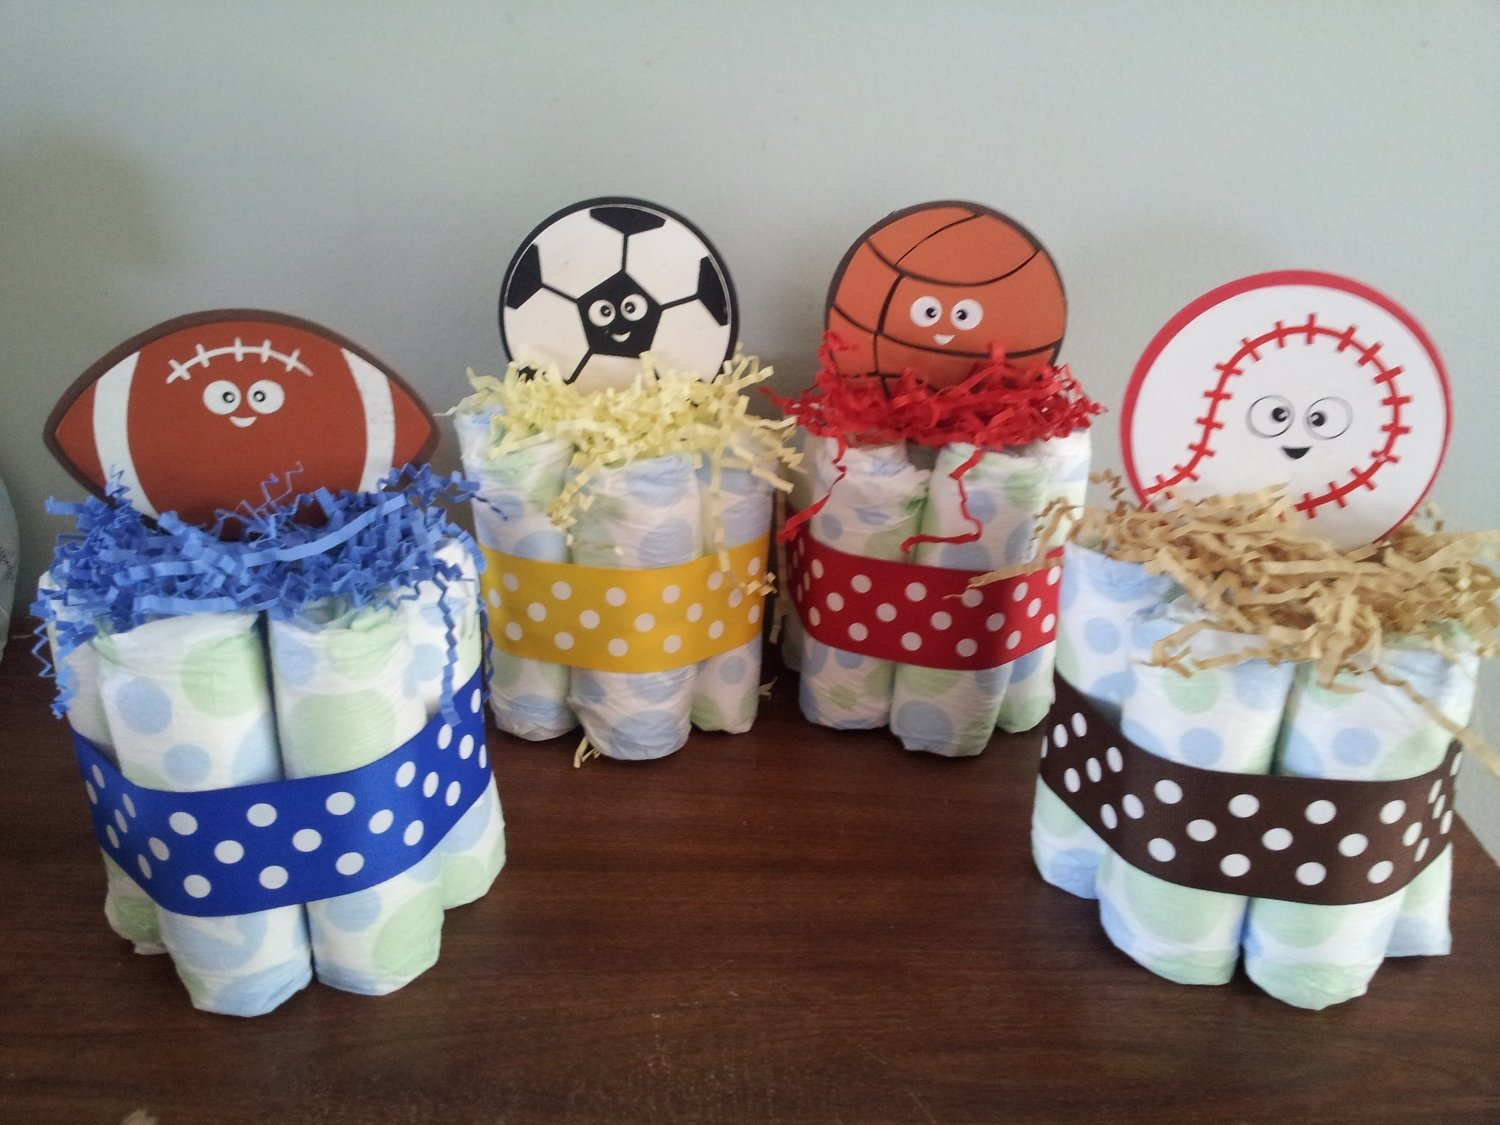 10 Ideal Sports Themed Baby Shower Ideas sports themed baby shower ideas omega center ideas for baby